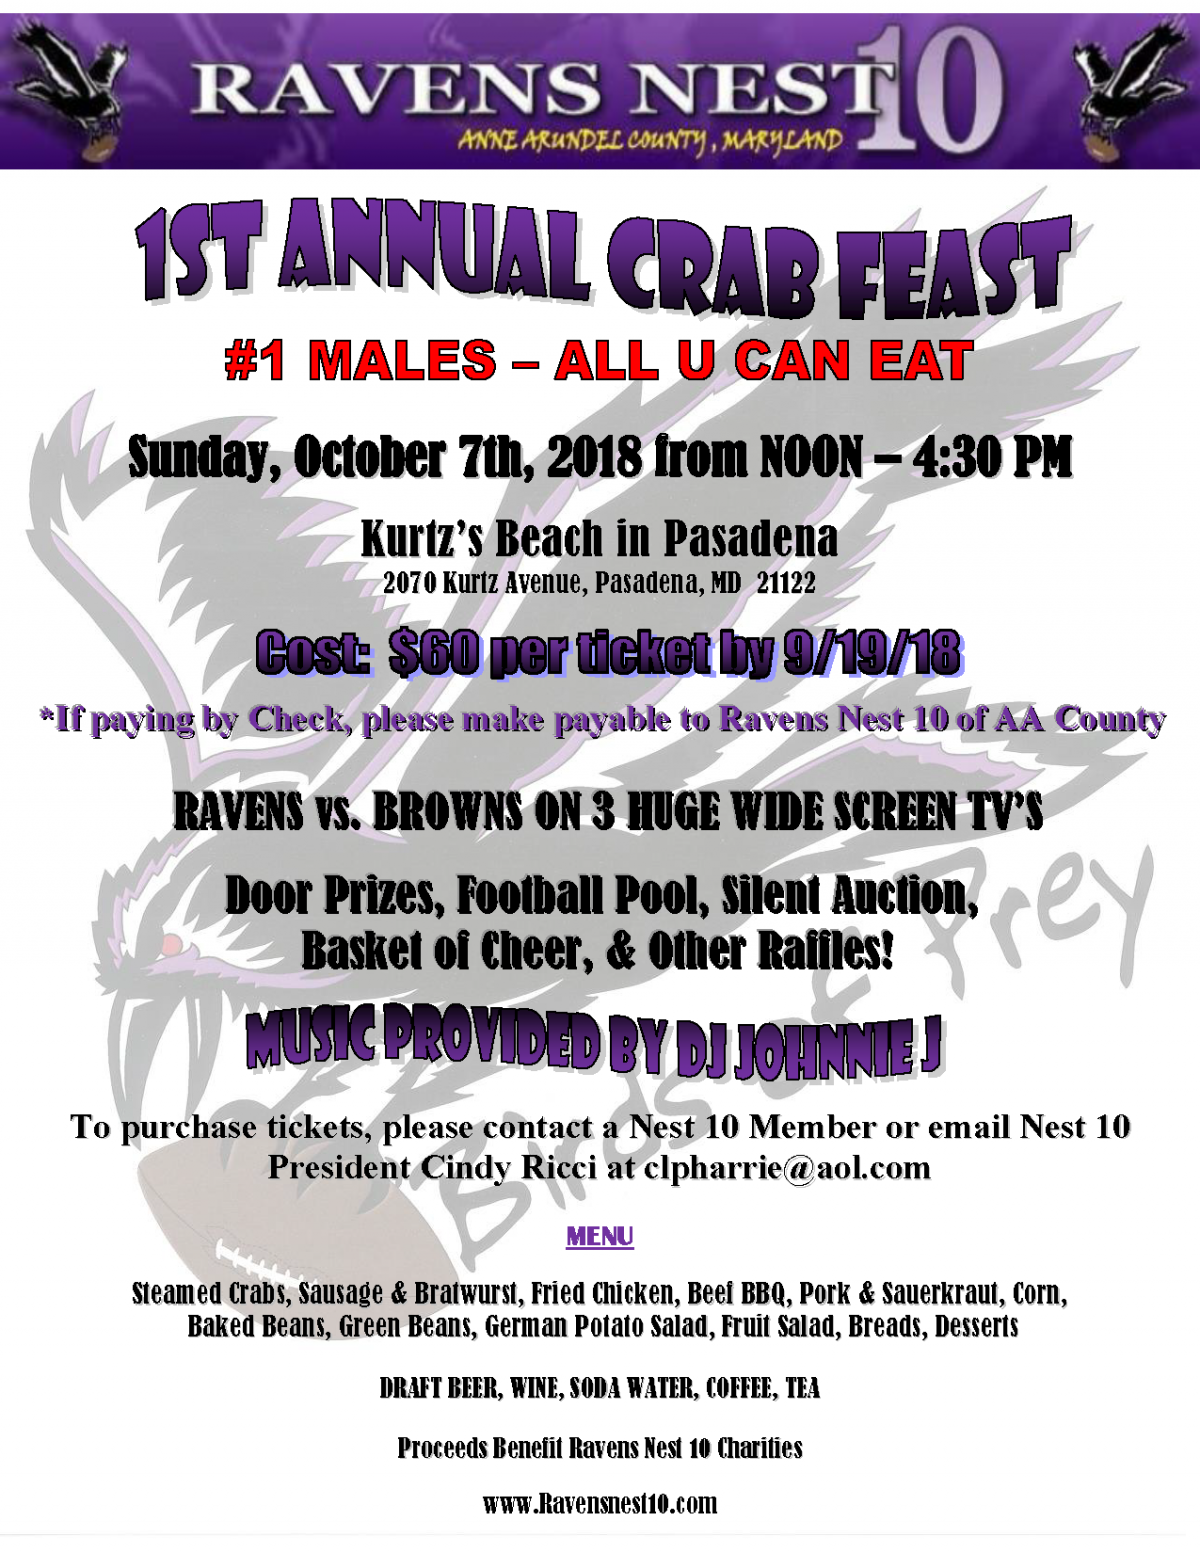 Get Crab Feast Tickets by 9/19